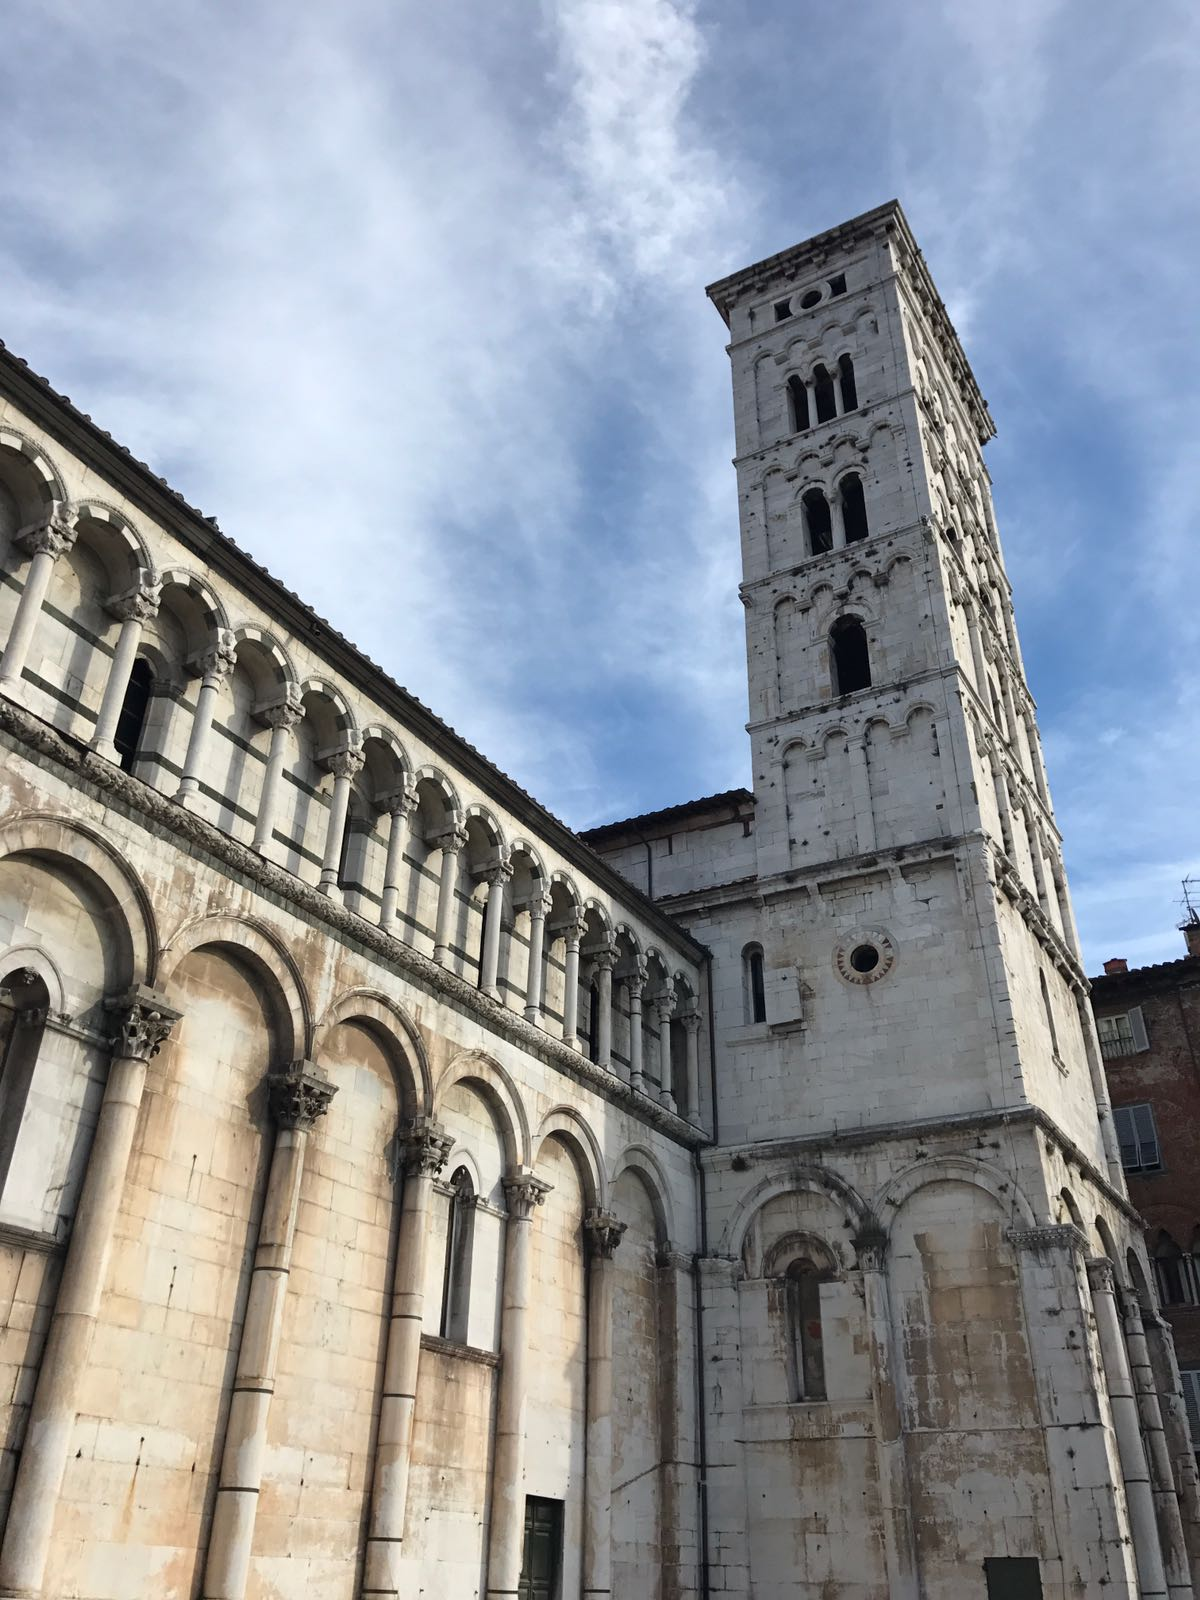 The tower of San Michele in Foro church in Lucca